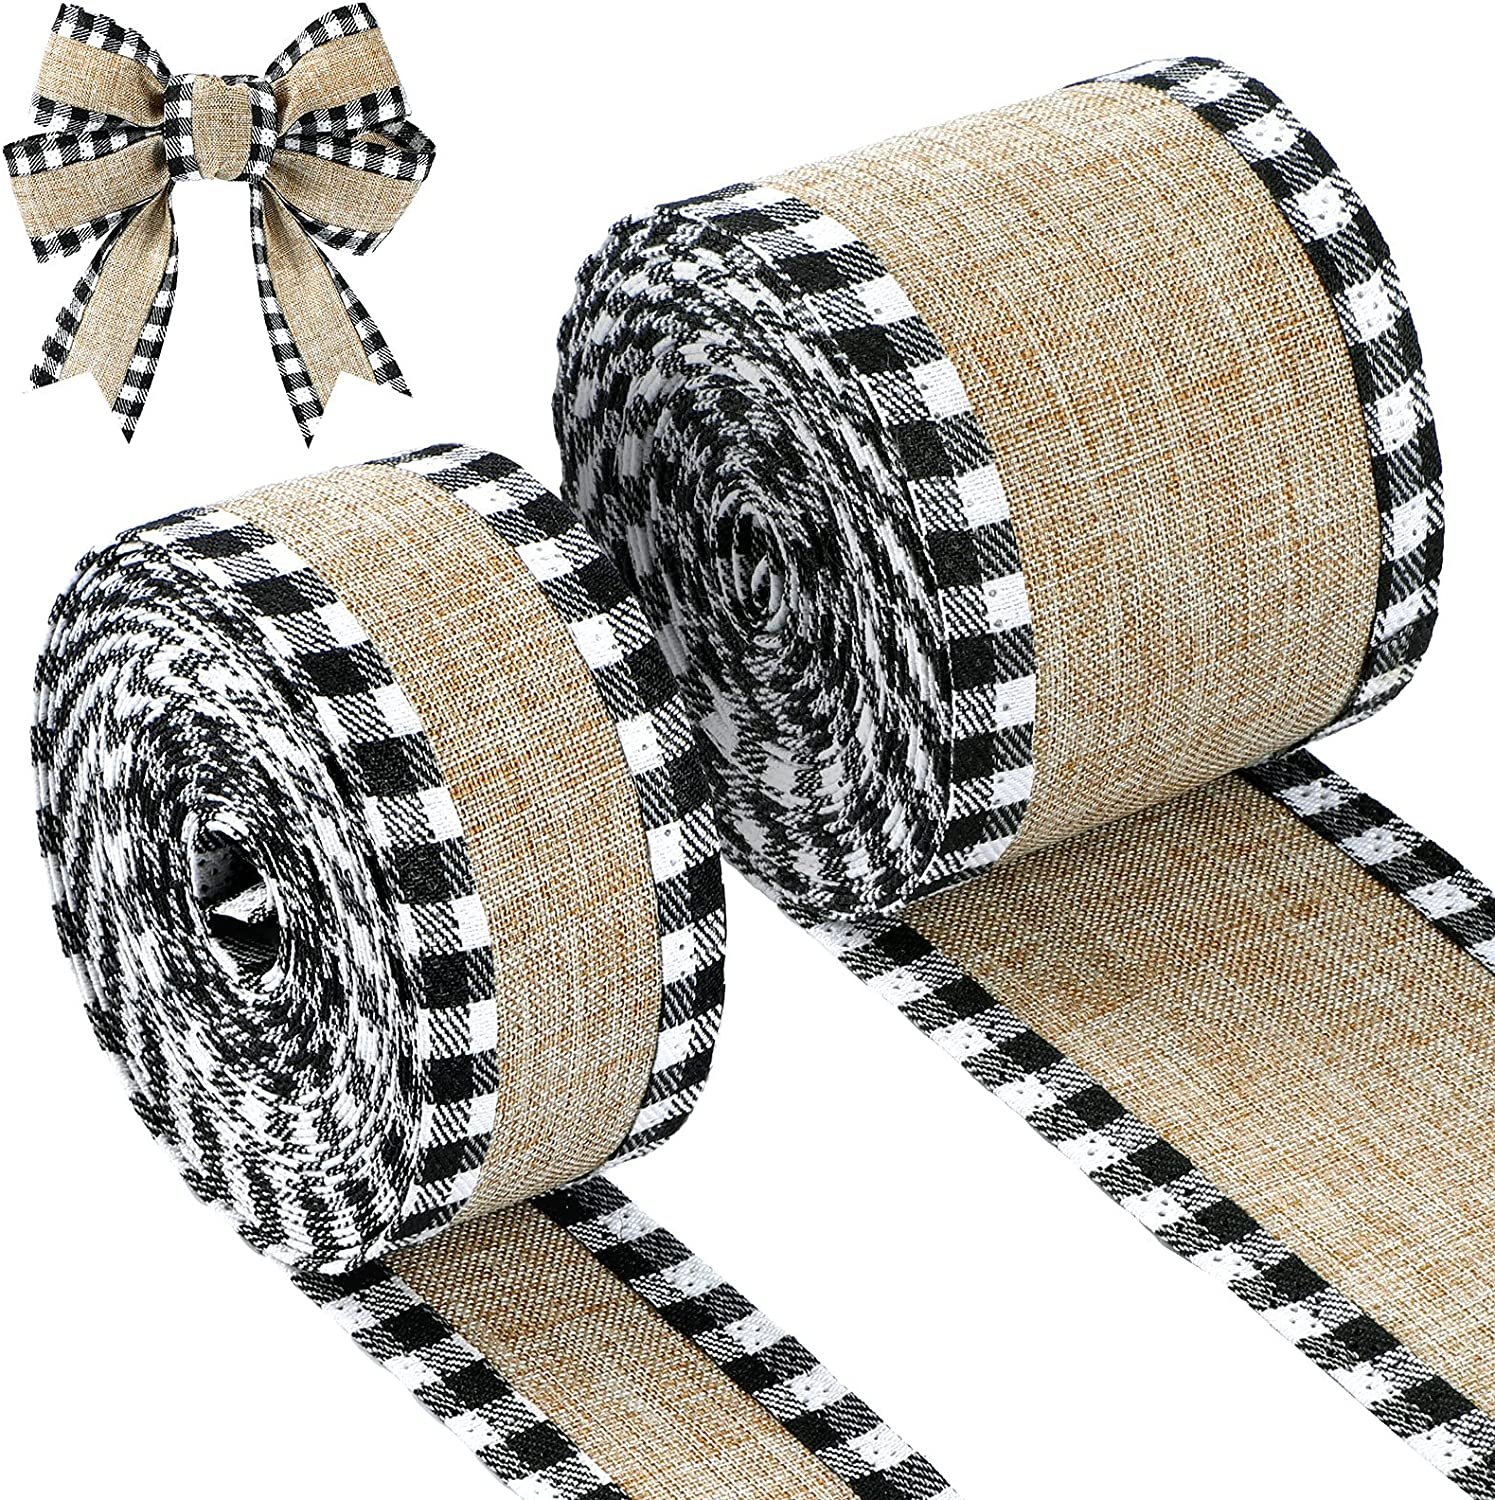 2 Rolls Buffalo Plaid Wired Edge Ribbons Christmas Burlap Fabric Craft Ribbon Natural Wrapping Ribbon Rolls with Checkered Edge (Black and White, 1.5 x 216 Inch, 2.5 x 216 Inch) : Arts, Crafts & Sewing